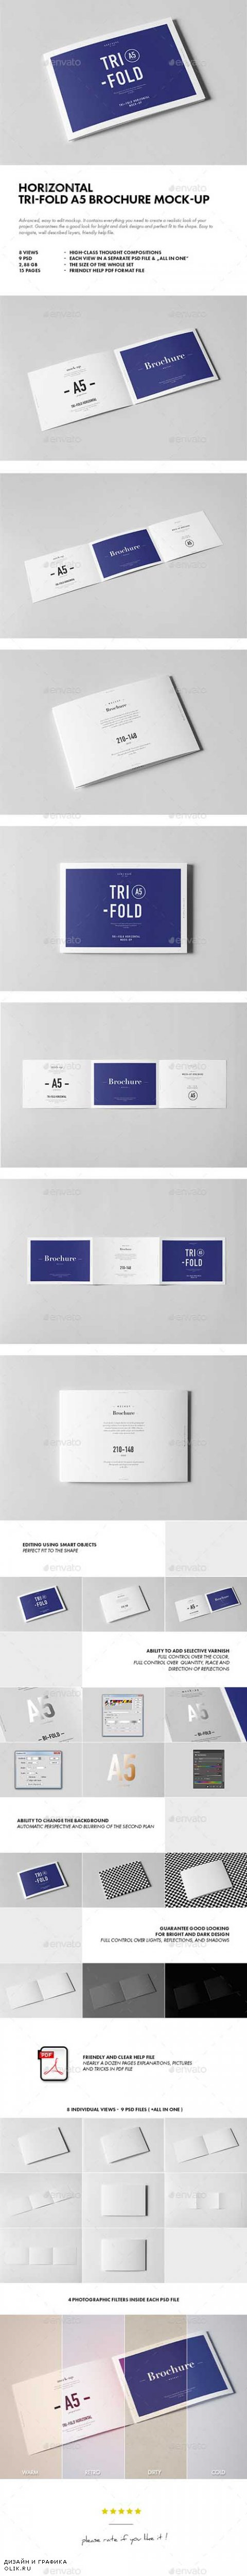 Horizontal Tri-Fold A5 Brochure Mock-up 18037533